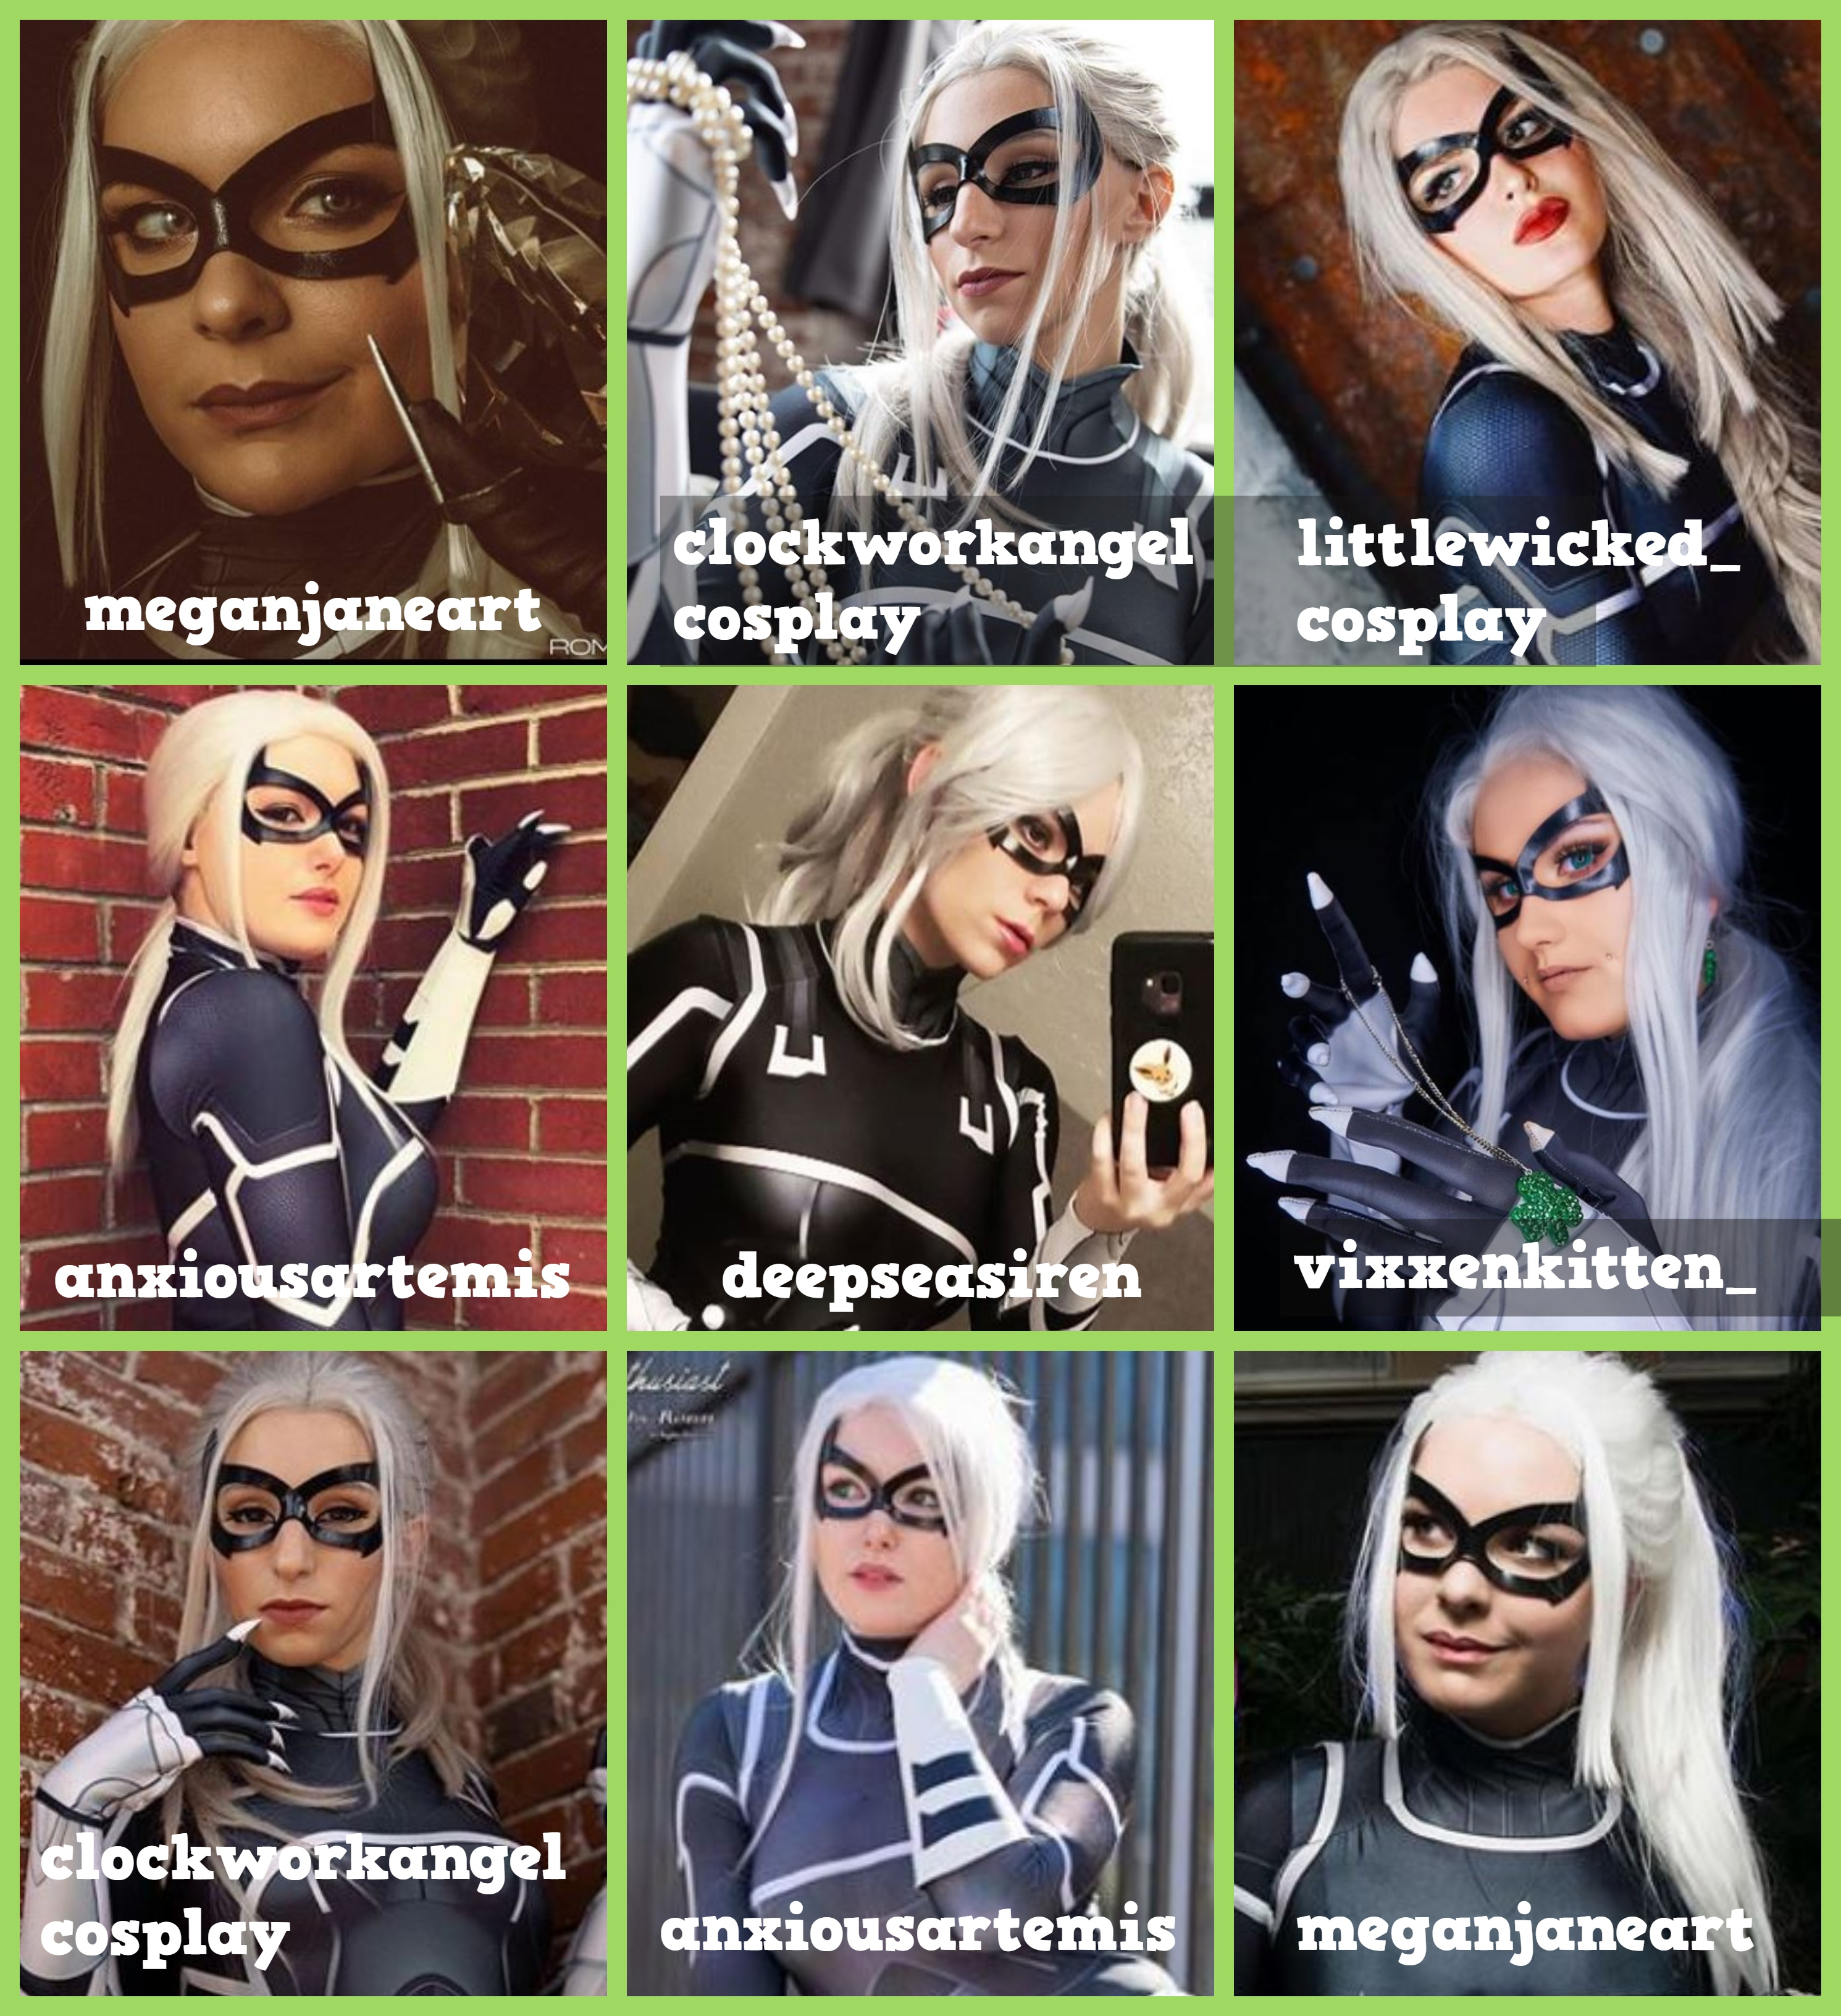 black-cat-ps4-cosplay-collage.jpg